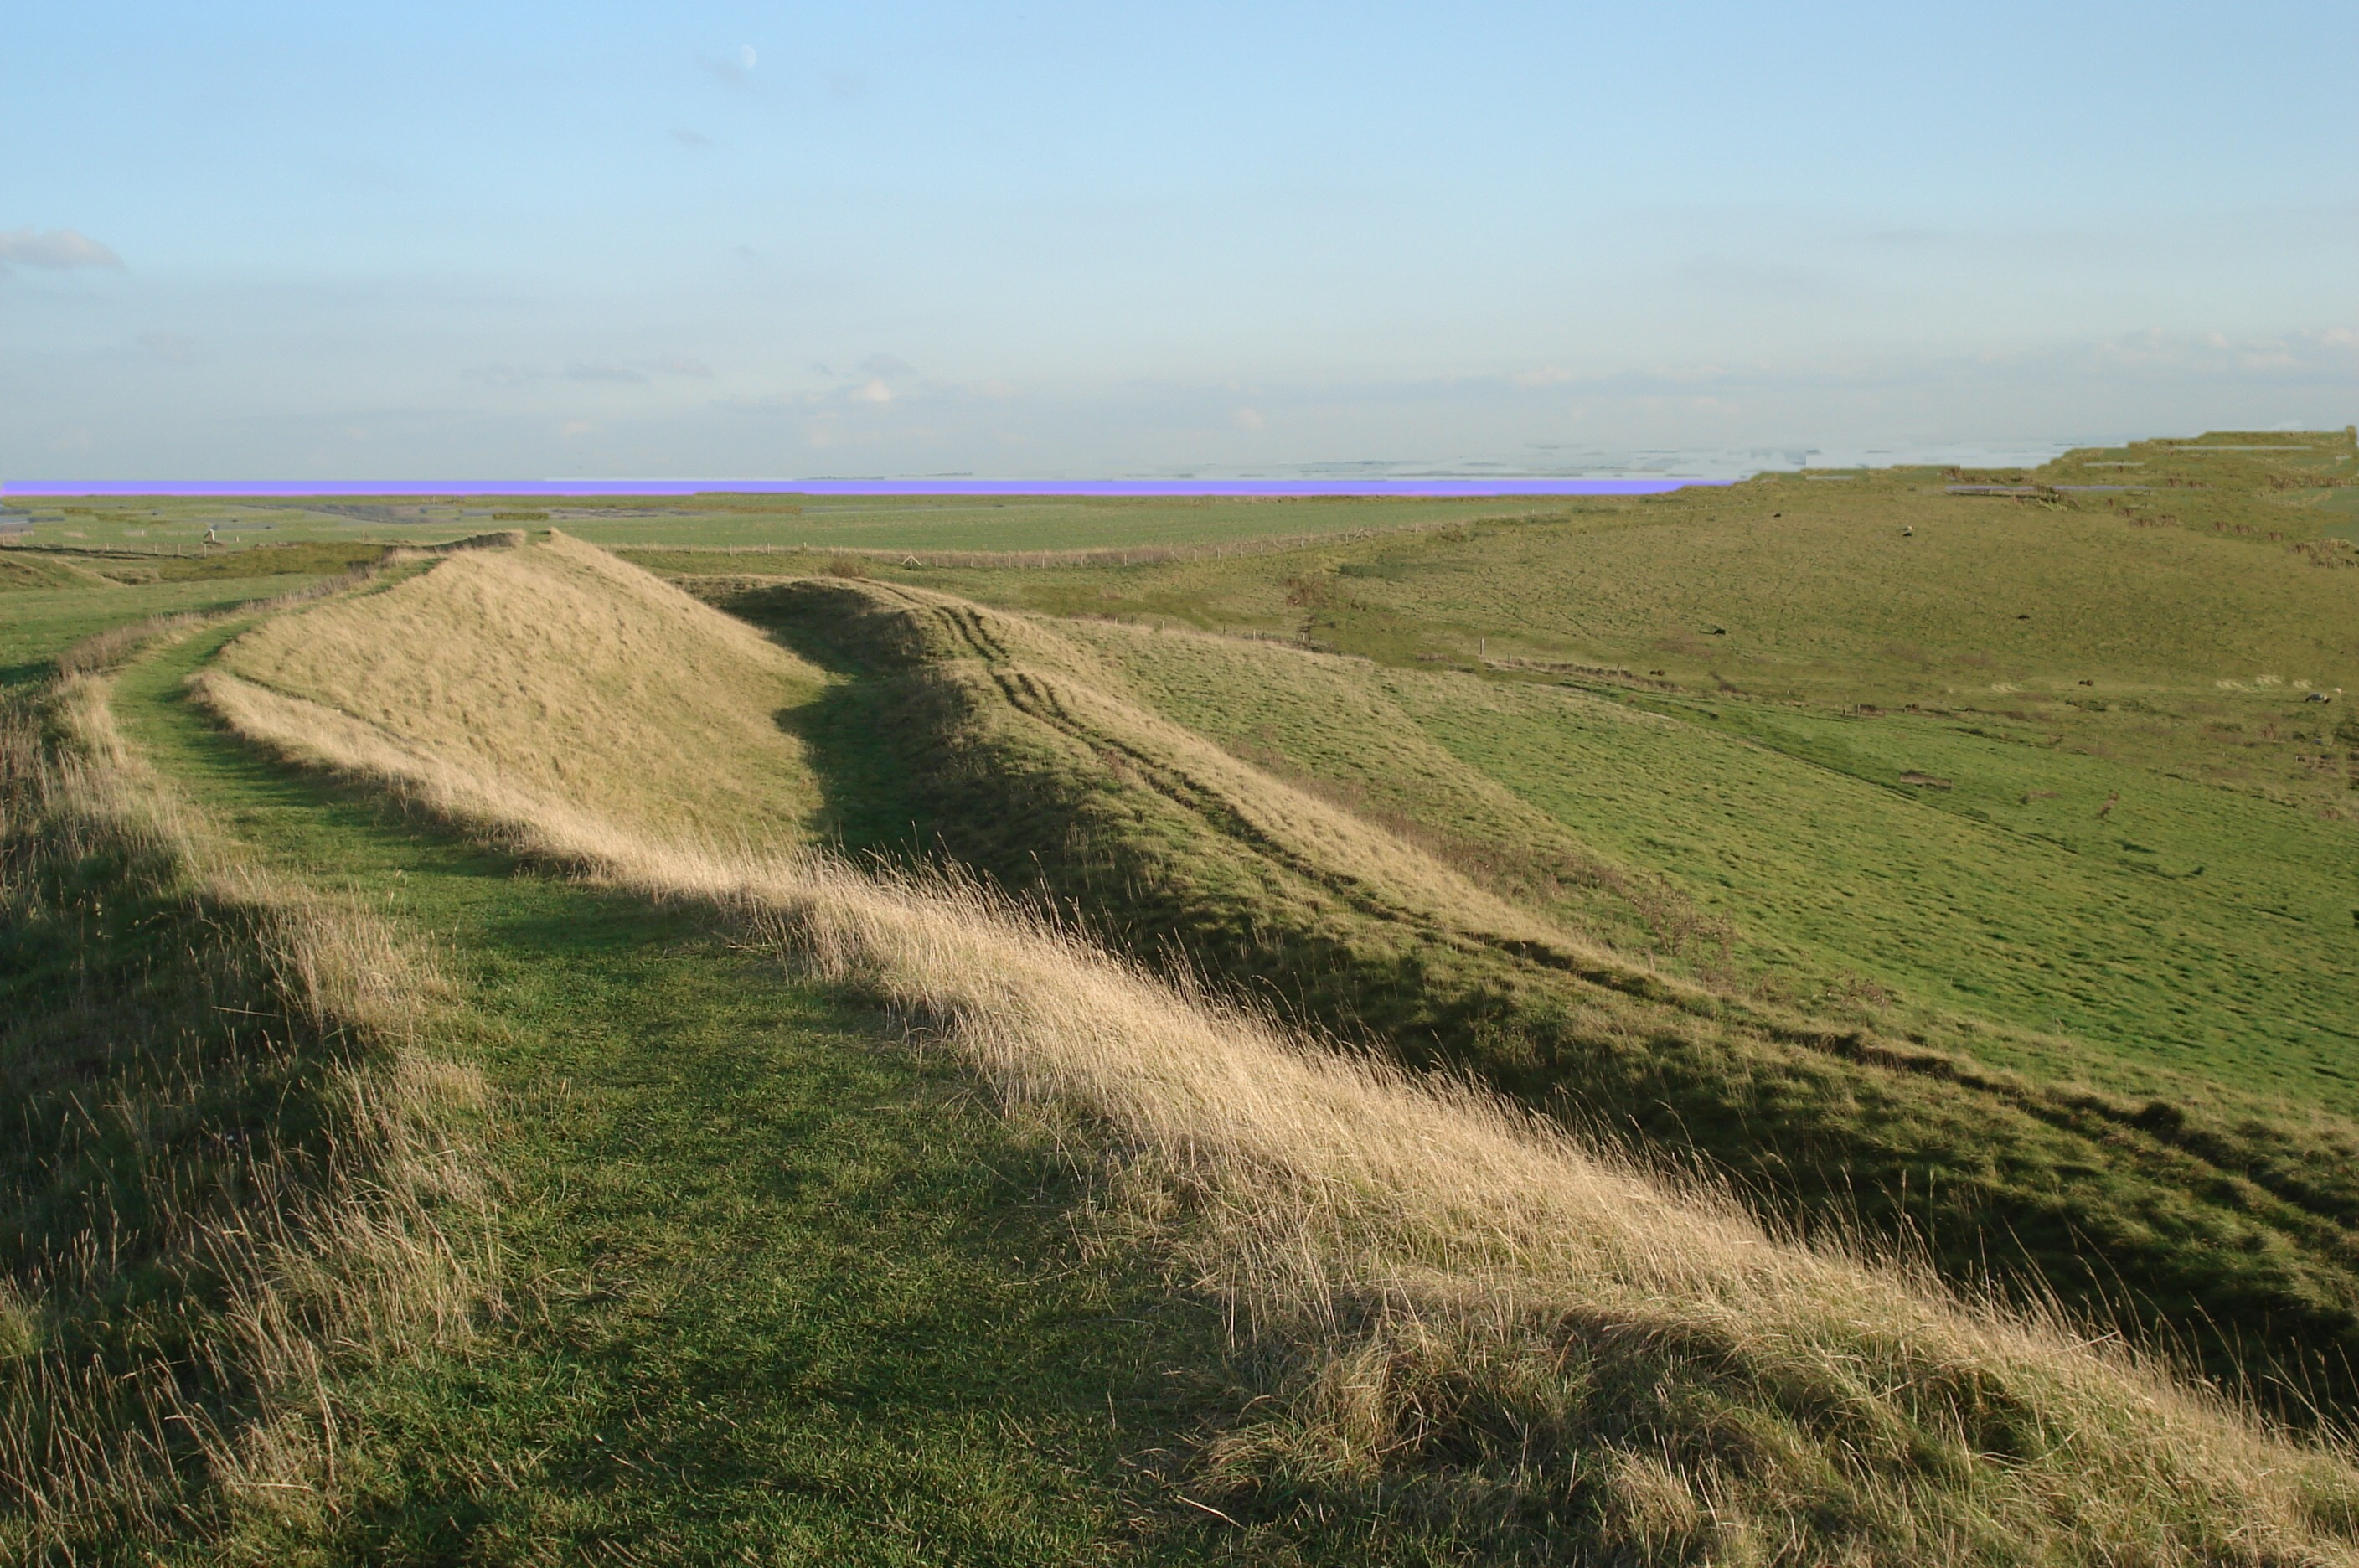 paths in a landscape